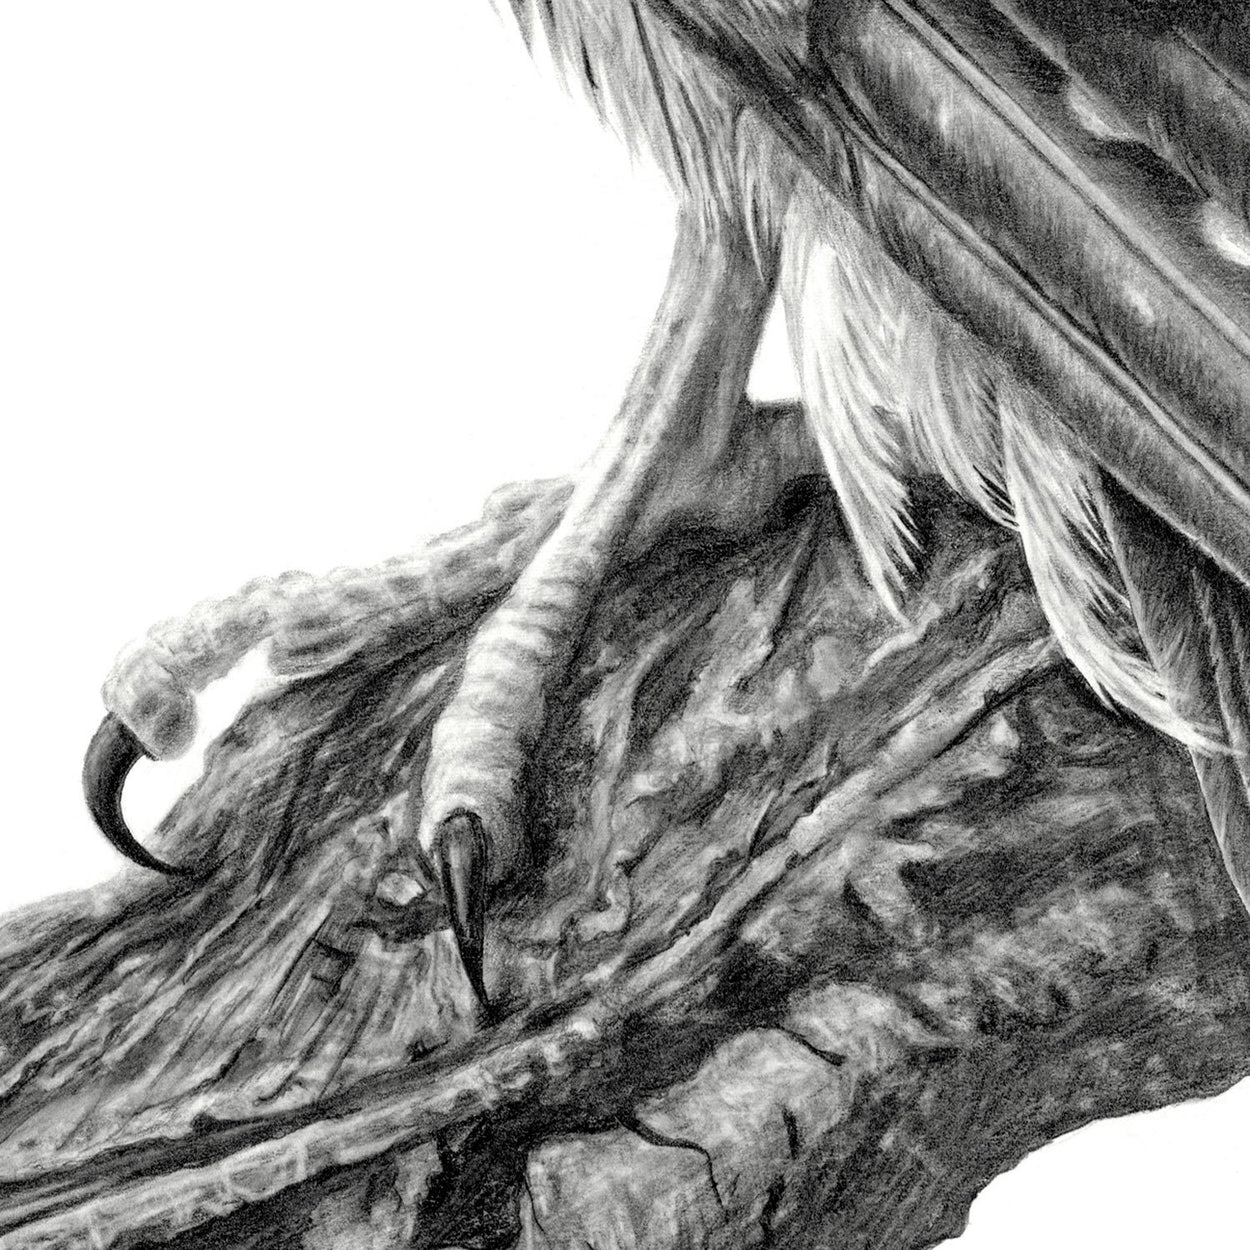 Merlin Bird of Prey Foot Close-up Drawing - The Thriving Wild